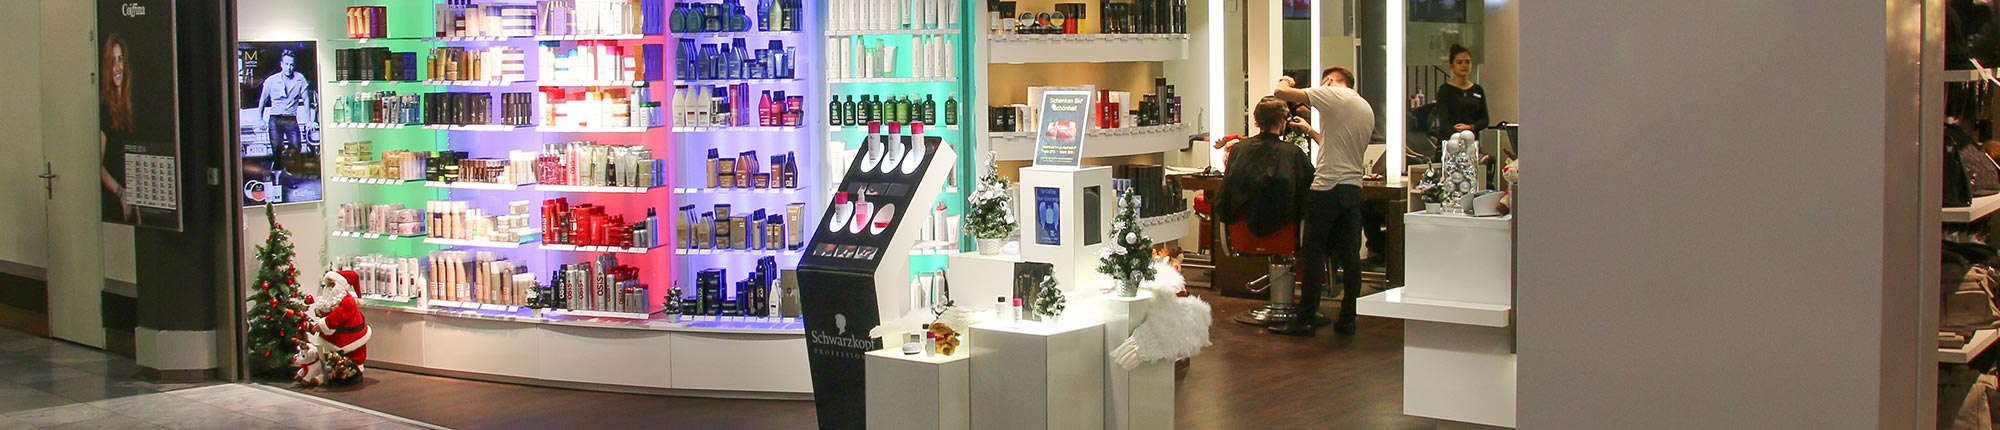 digital signage flying shelf regalleisten schwarzkopf coiffina